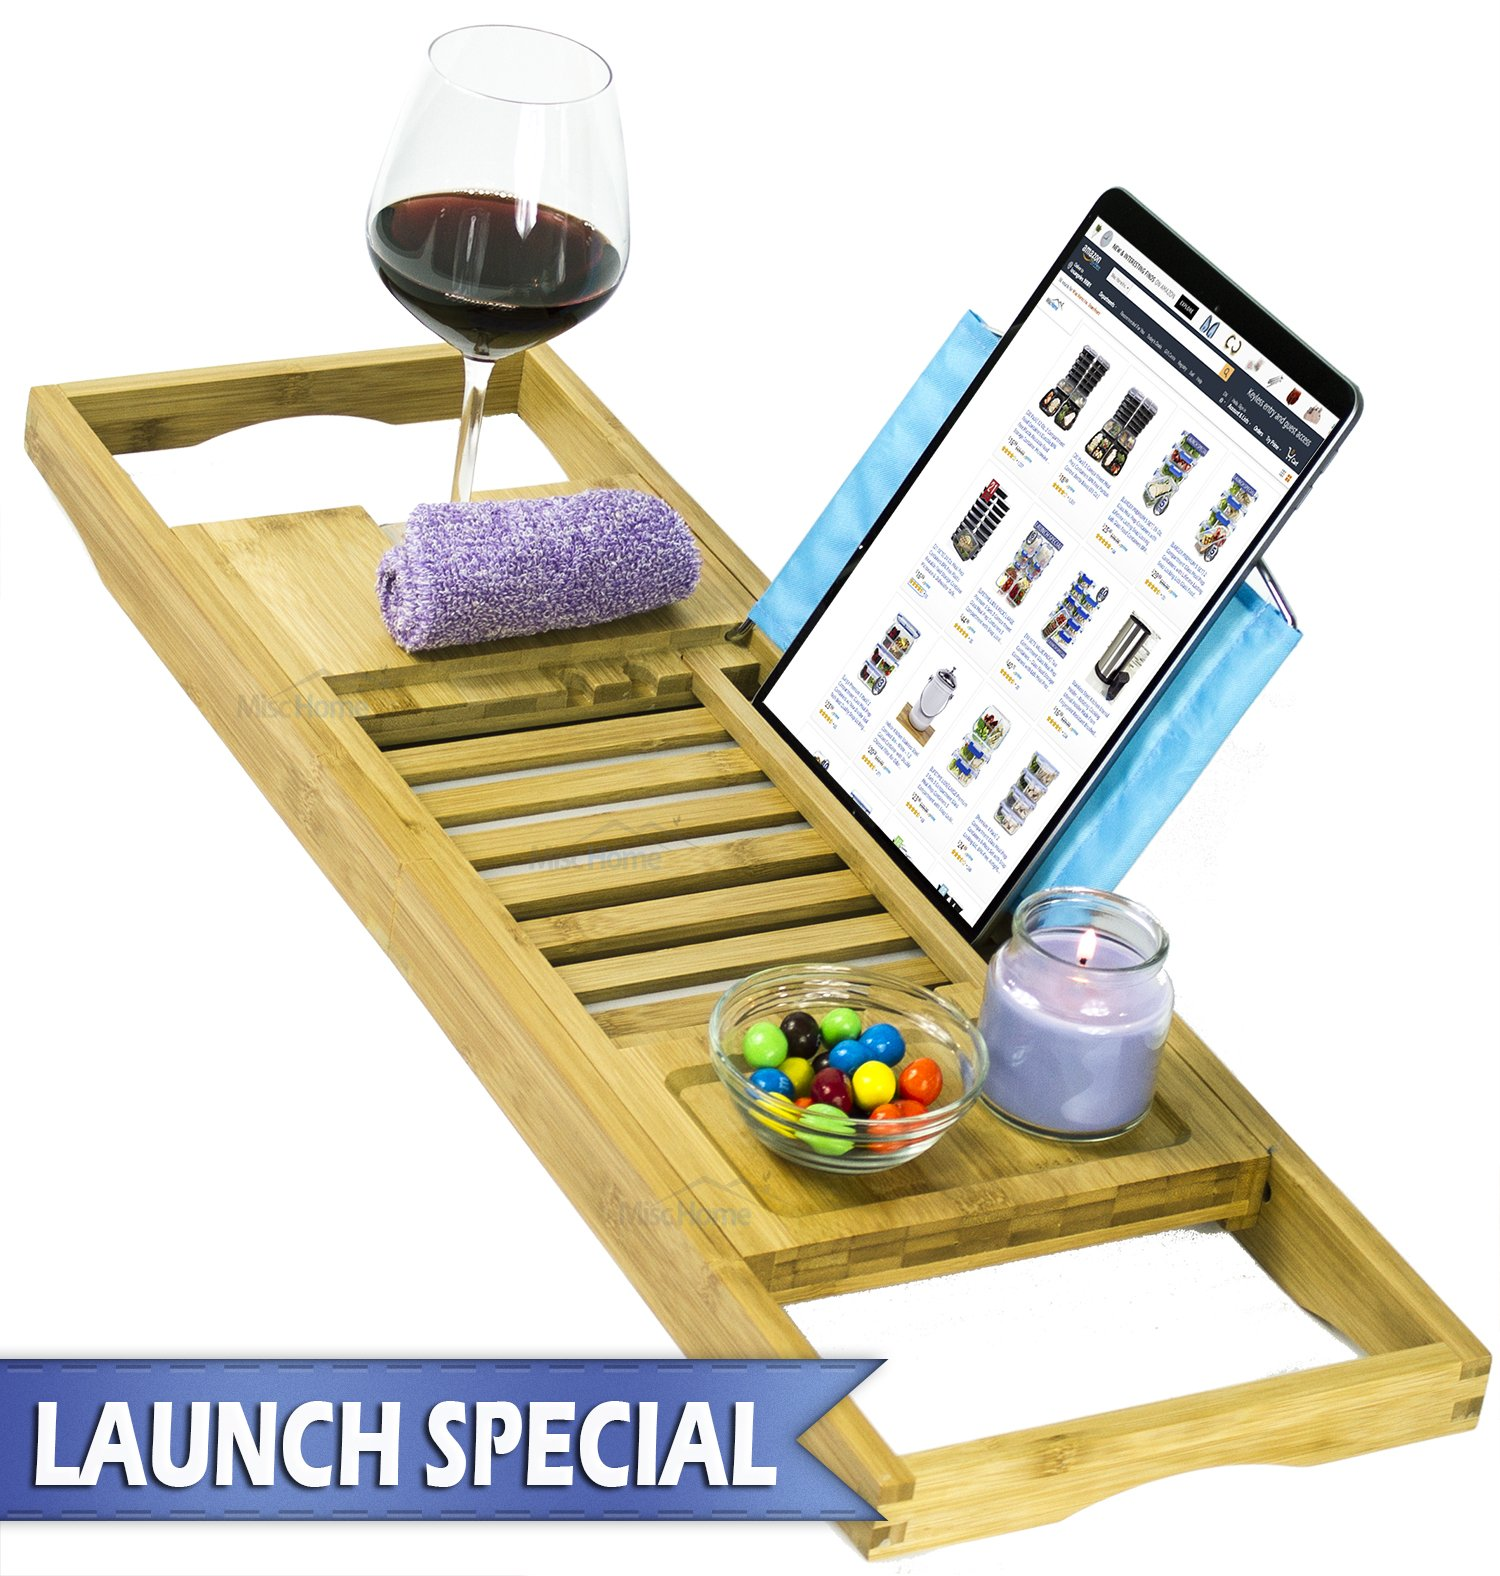 [Luxury] Bamboo Bathtub Caddy Tray with Expanding Sides, Premium Bath Tray, Tablet Holder, Wine Glass Holder, Eco Friendly Spay Tray for Bathtub Tray with Wine Holder for Bathtub by Misc Home (Image #1)